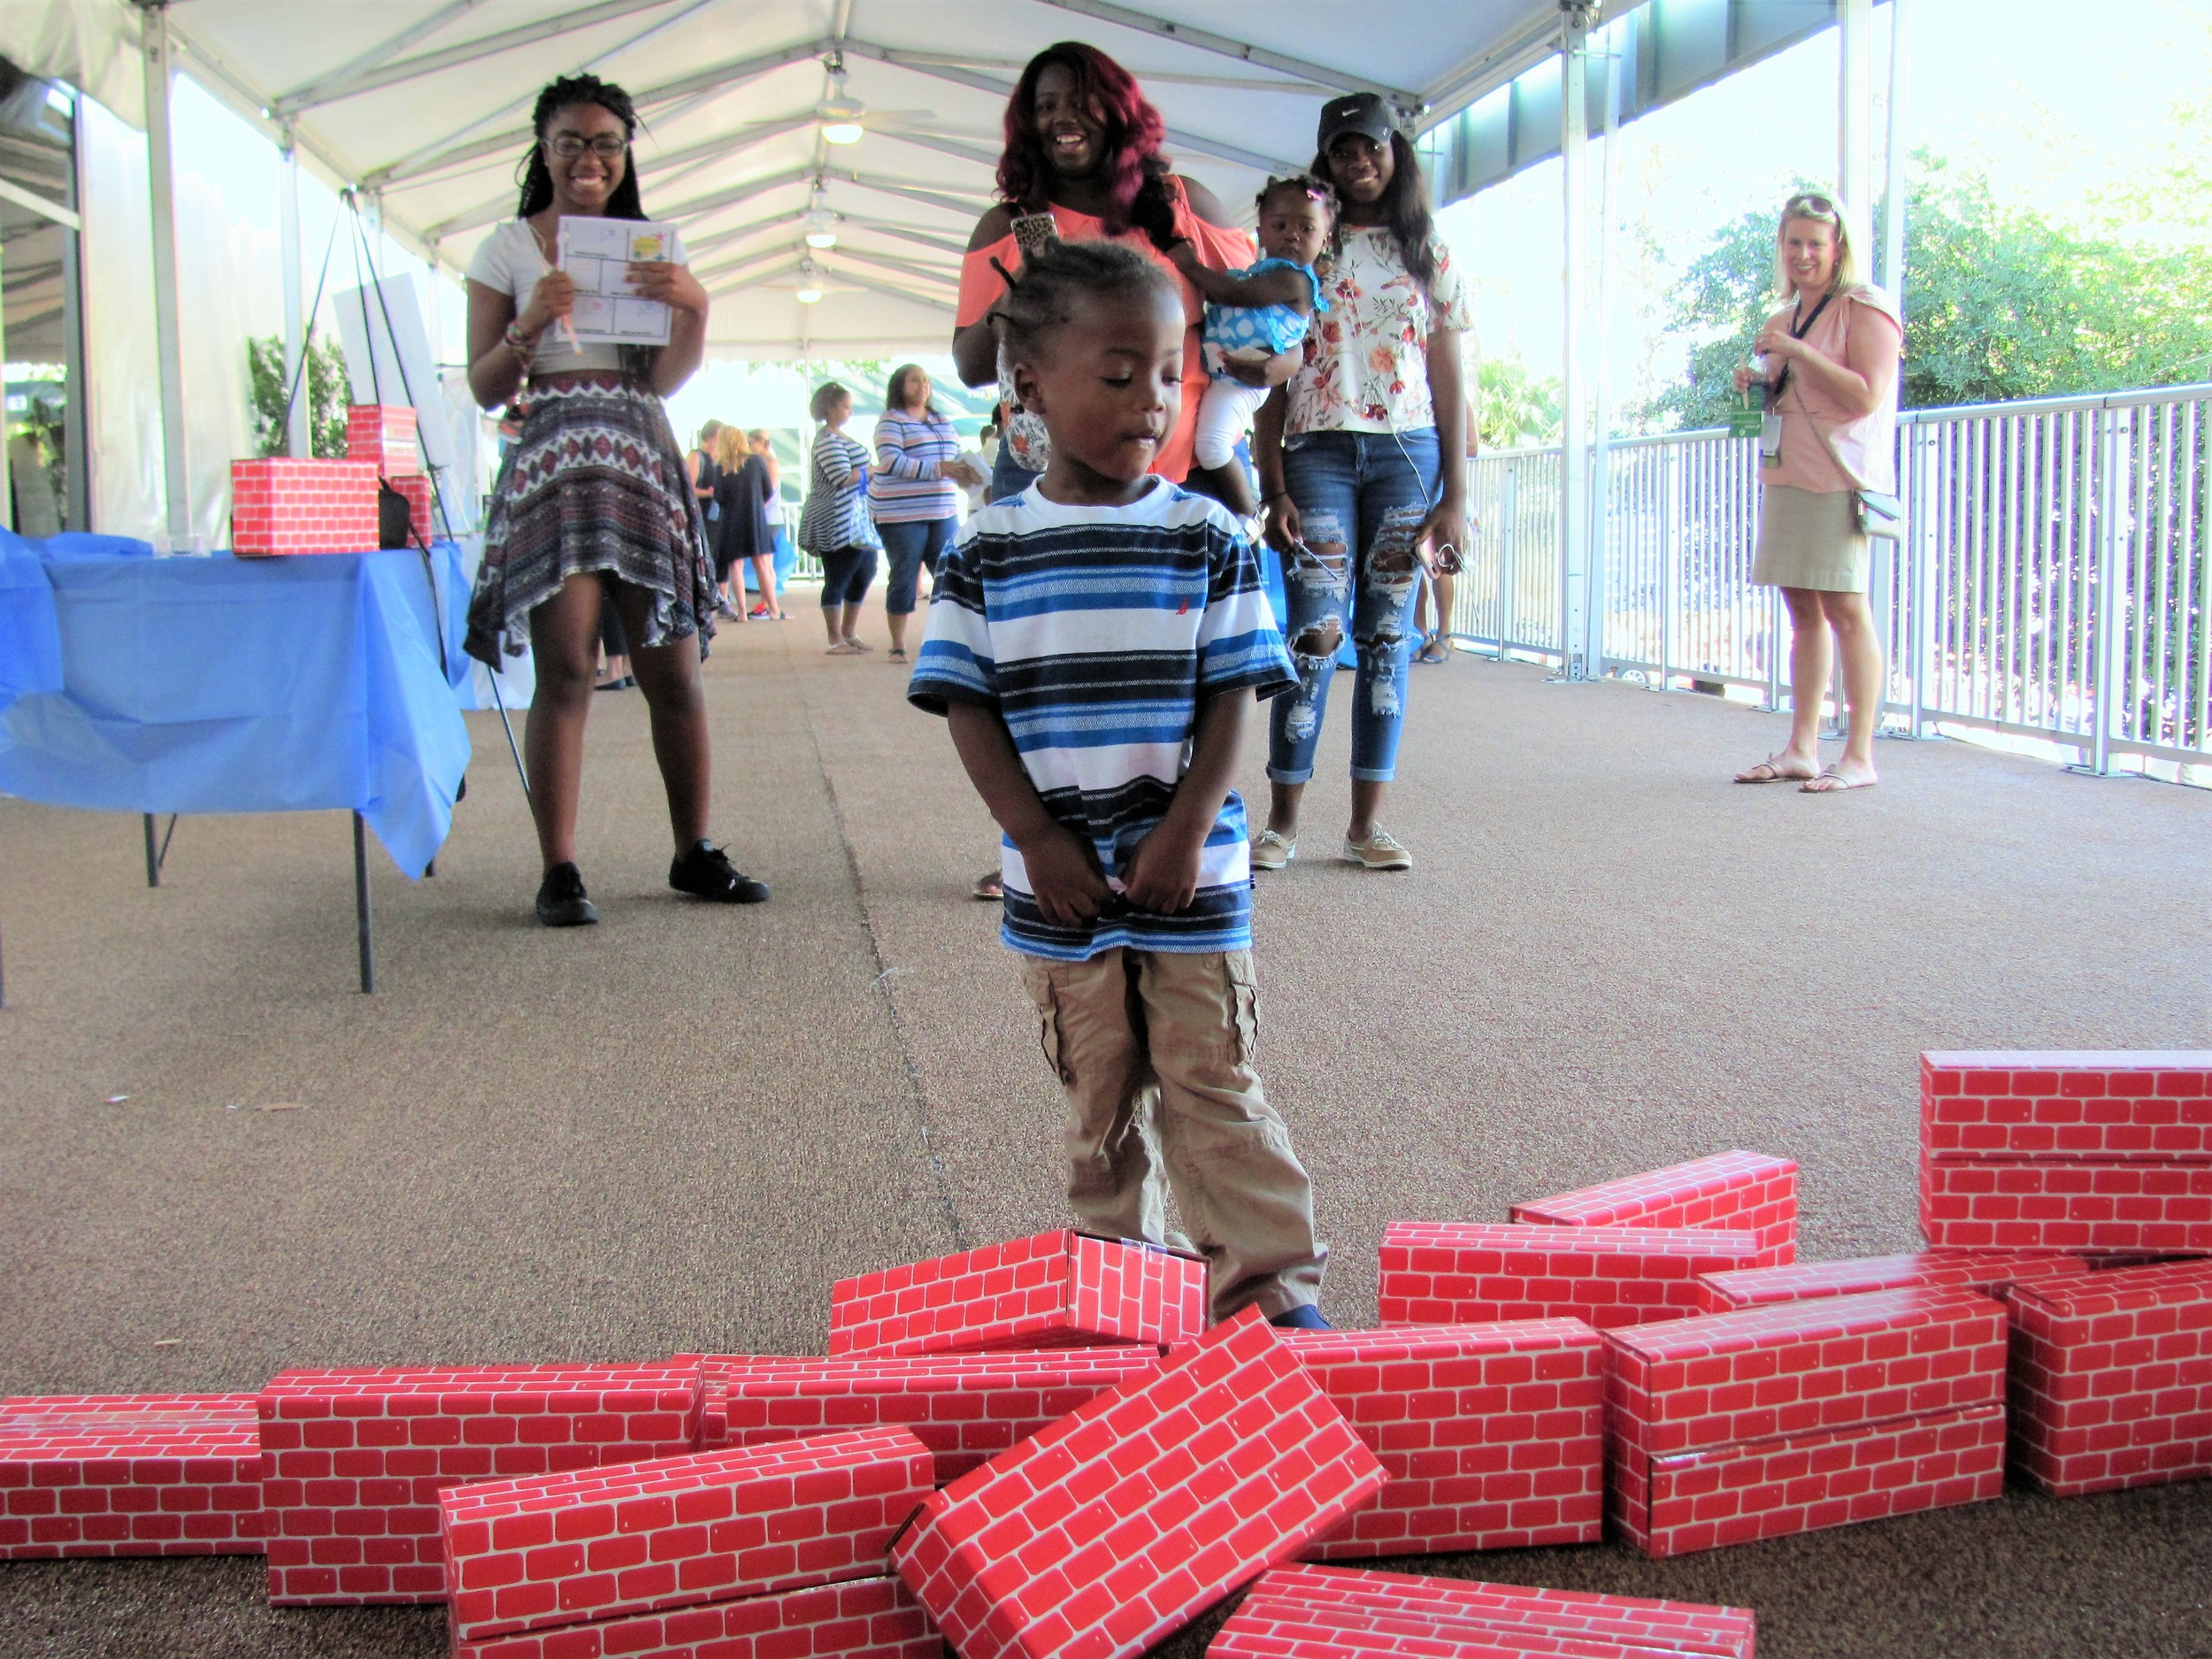 One of the children at the event kicks over a stack of blocks.